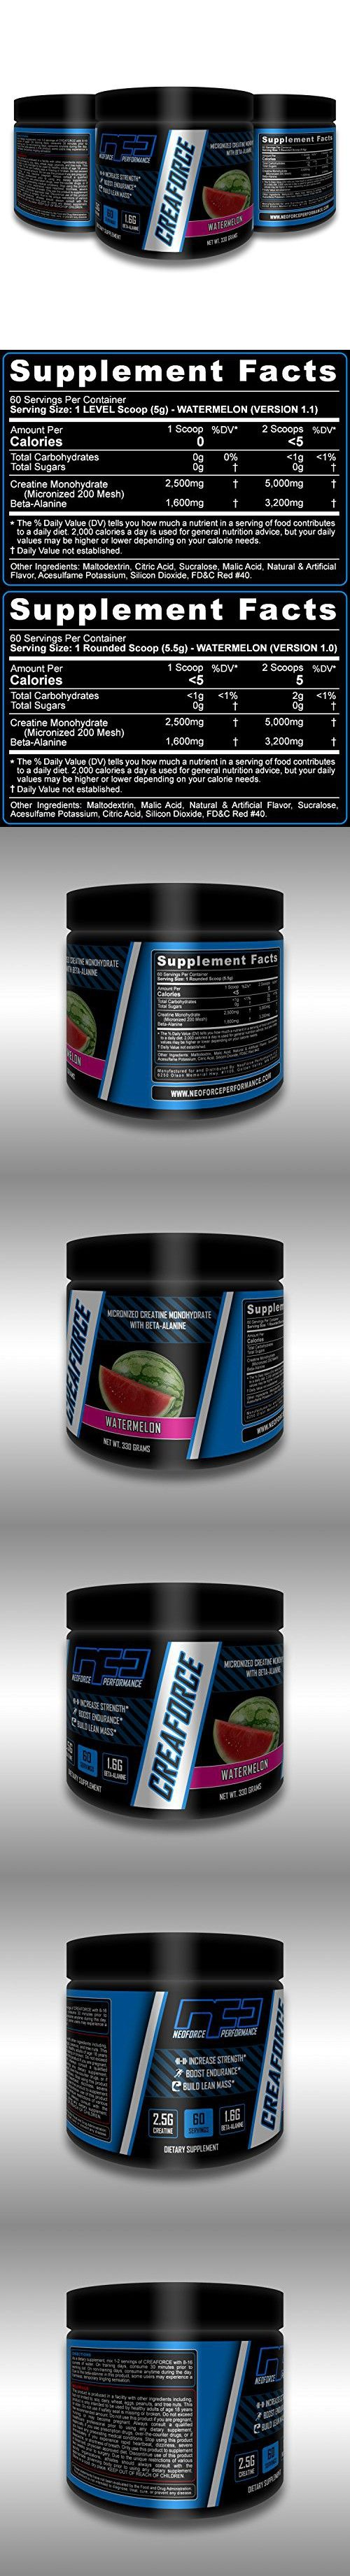 NeoForce CREAFORCE Micronized Creatine Monohydrate and Beta-Alanine - 60 Servings (300 Grams) of Watermelon Flavor | Supports Strength, Endurance, and Lean Mass | 30-Day Money Back Guarantee